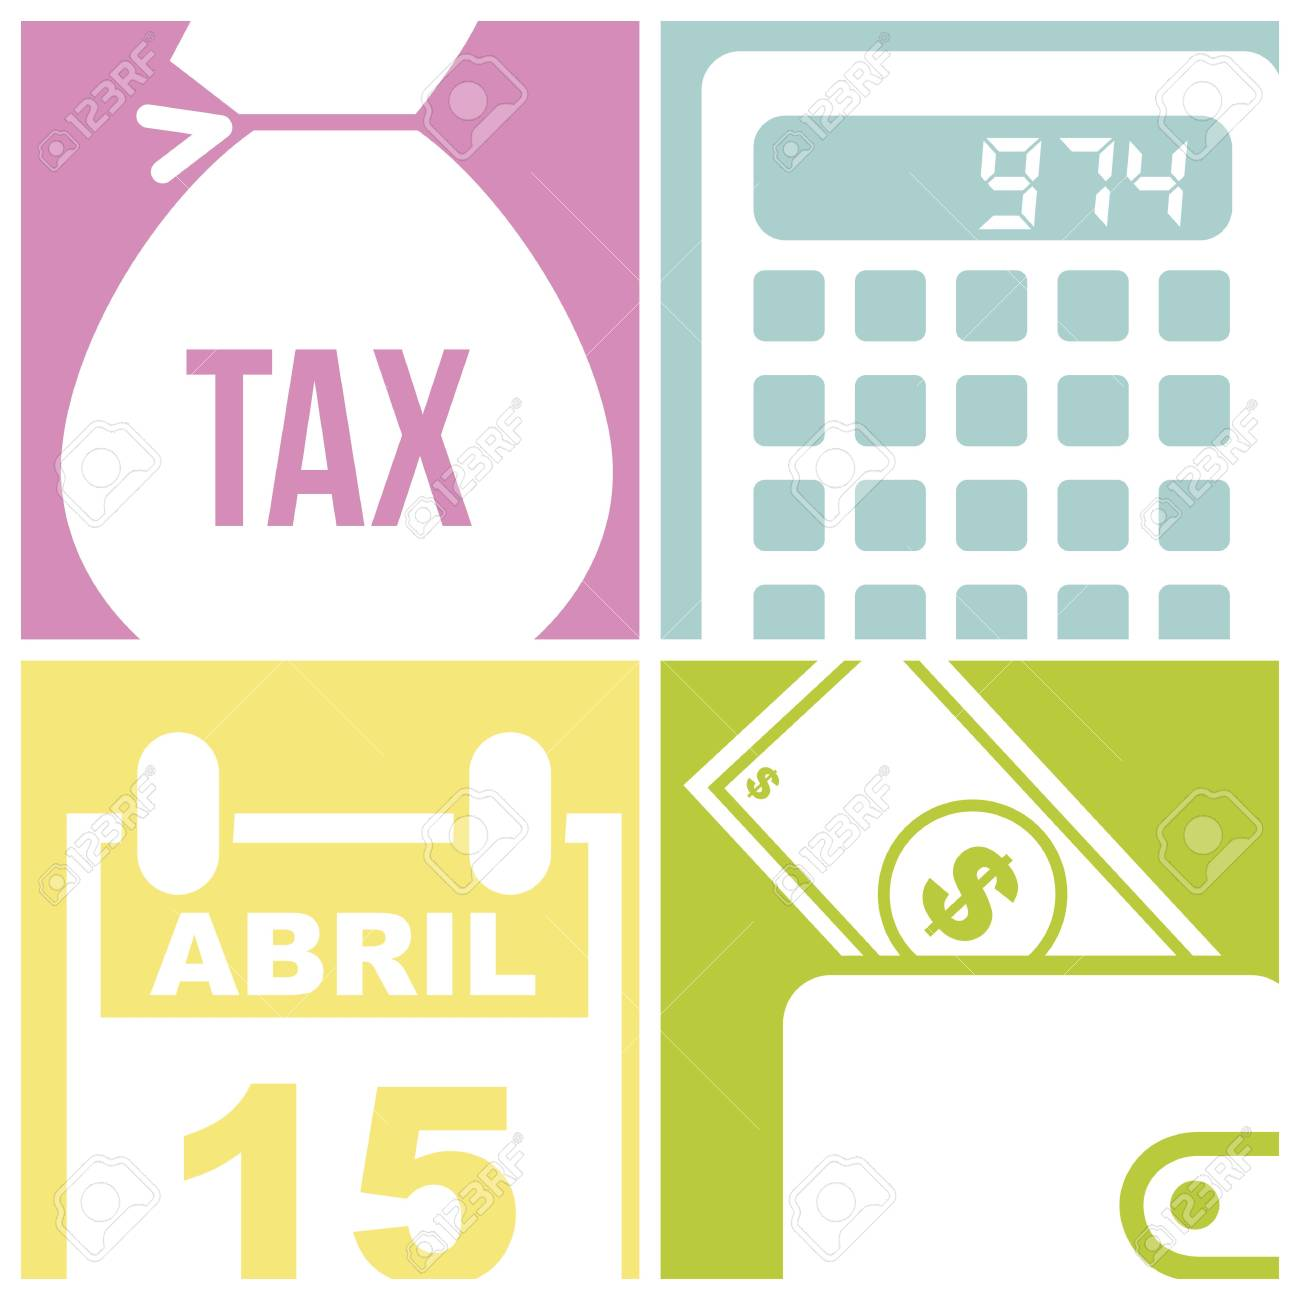 tax icons over  squares background. vector illustration Stock Vector - 18333688